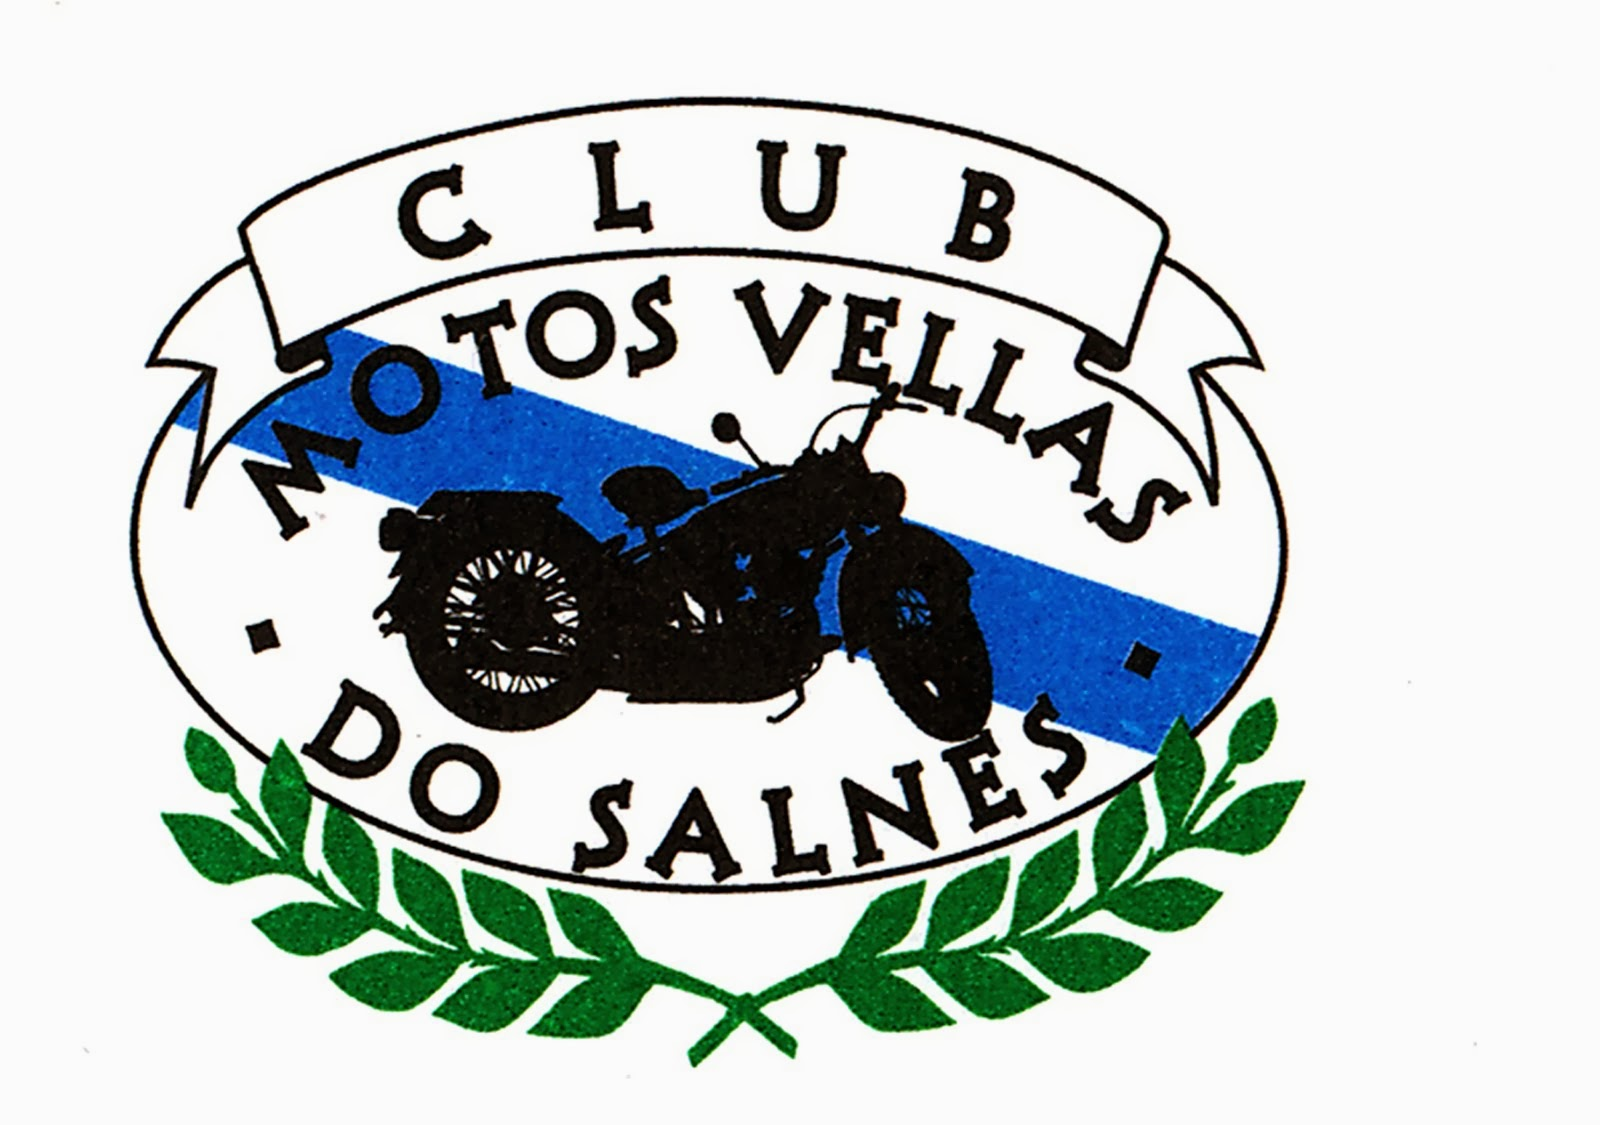 MOTOS VELLAS DO SALNES